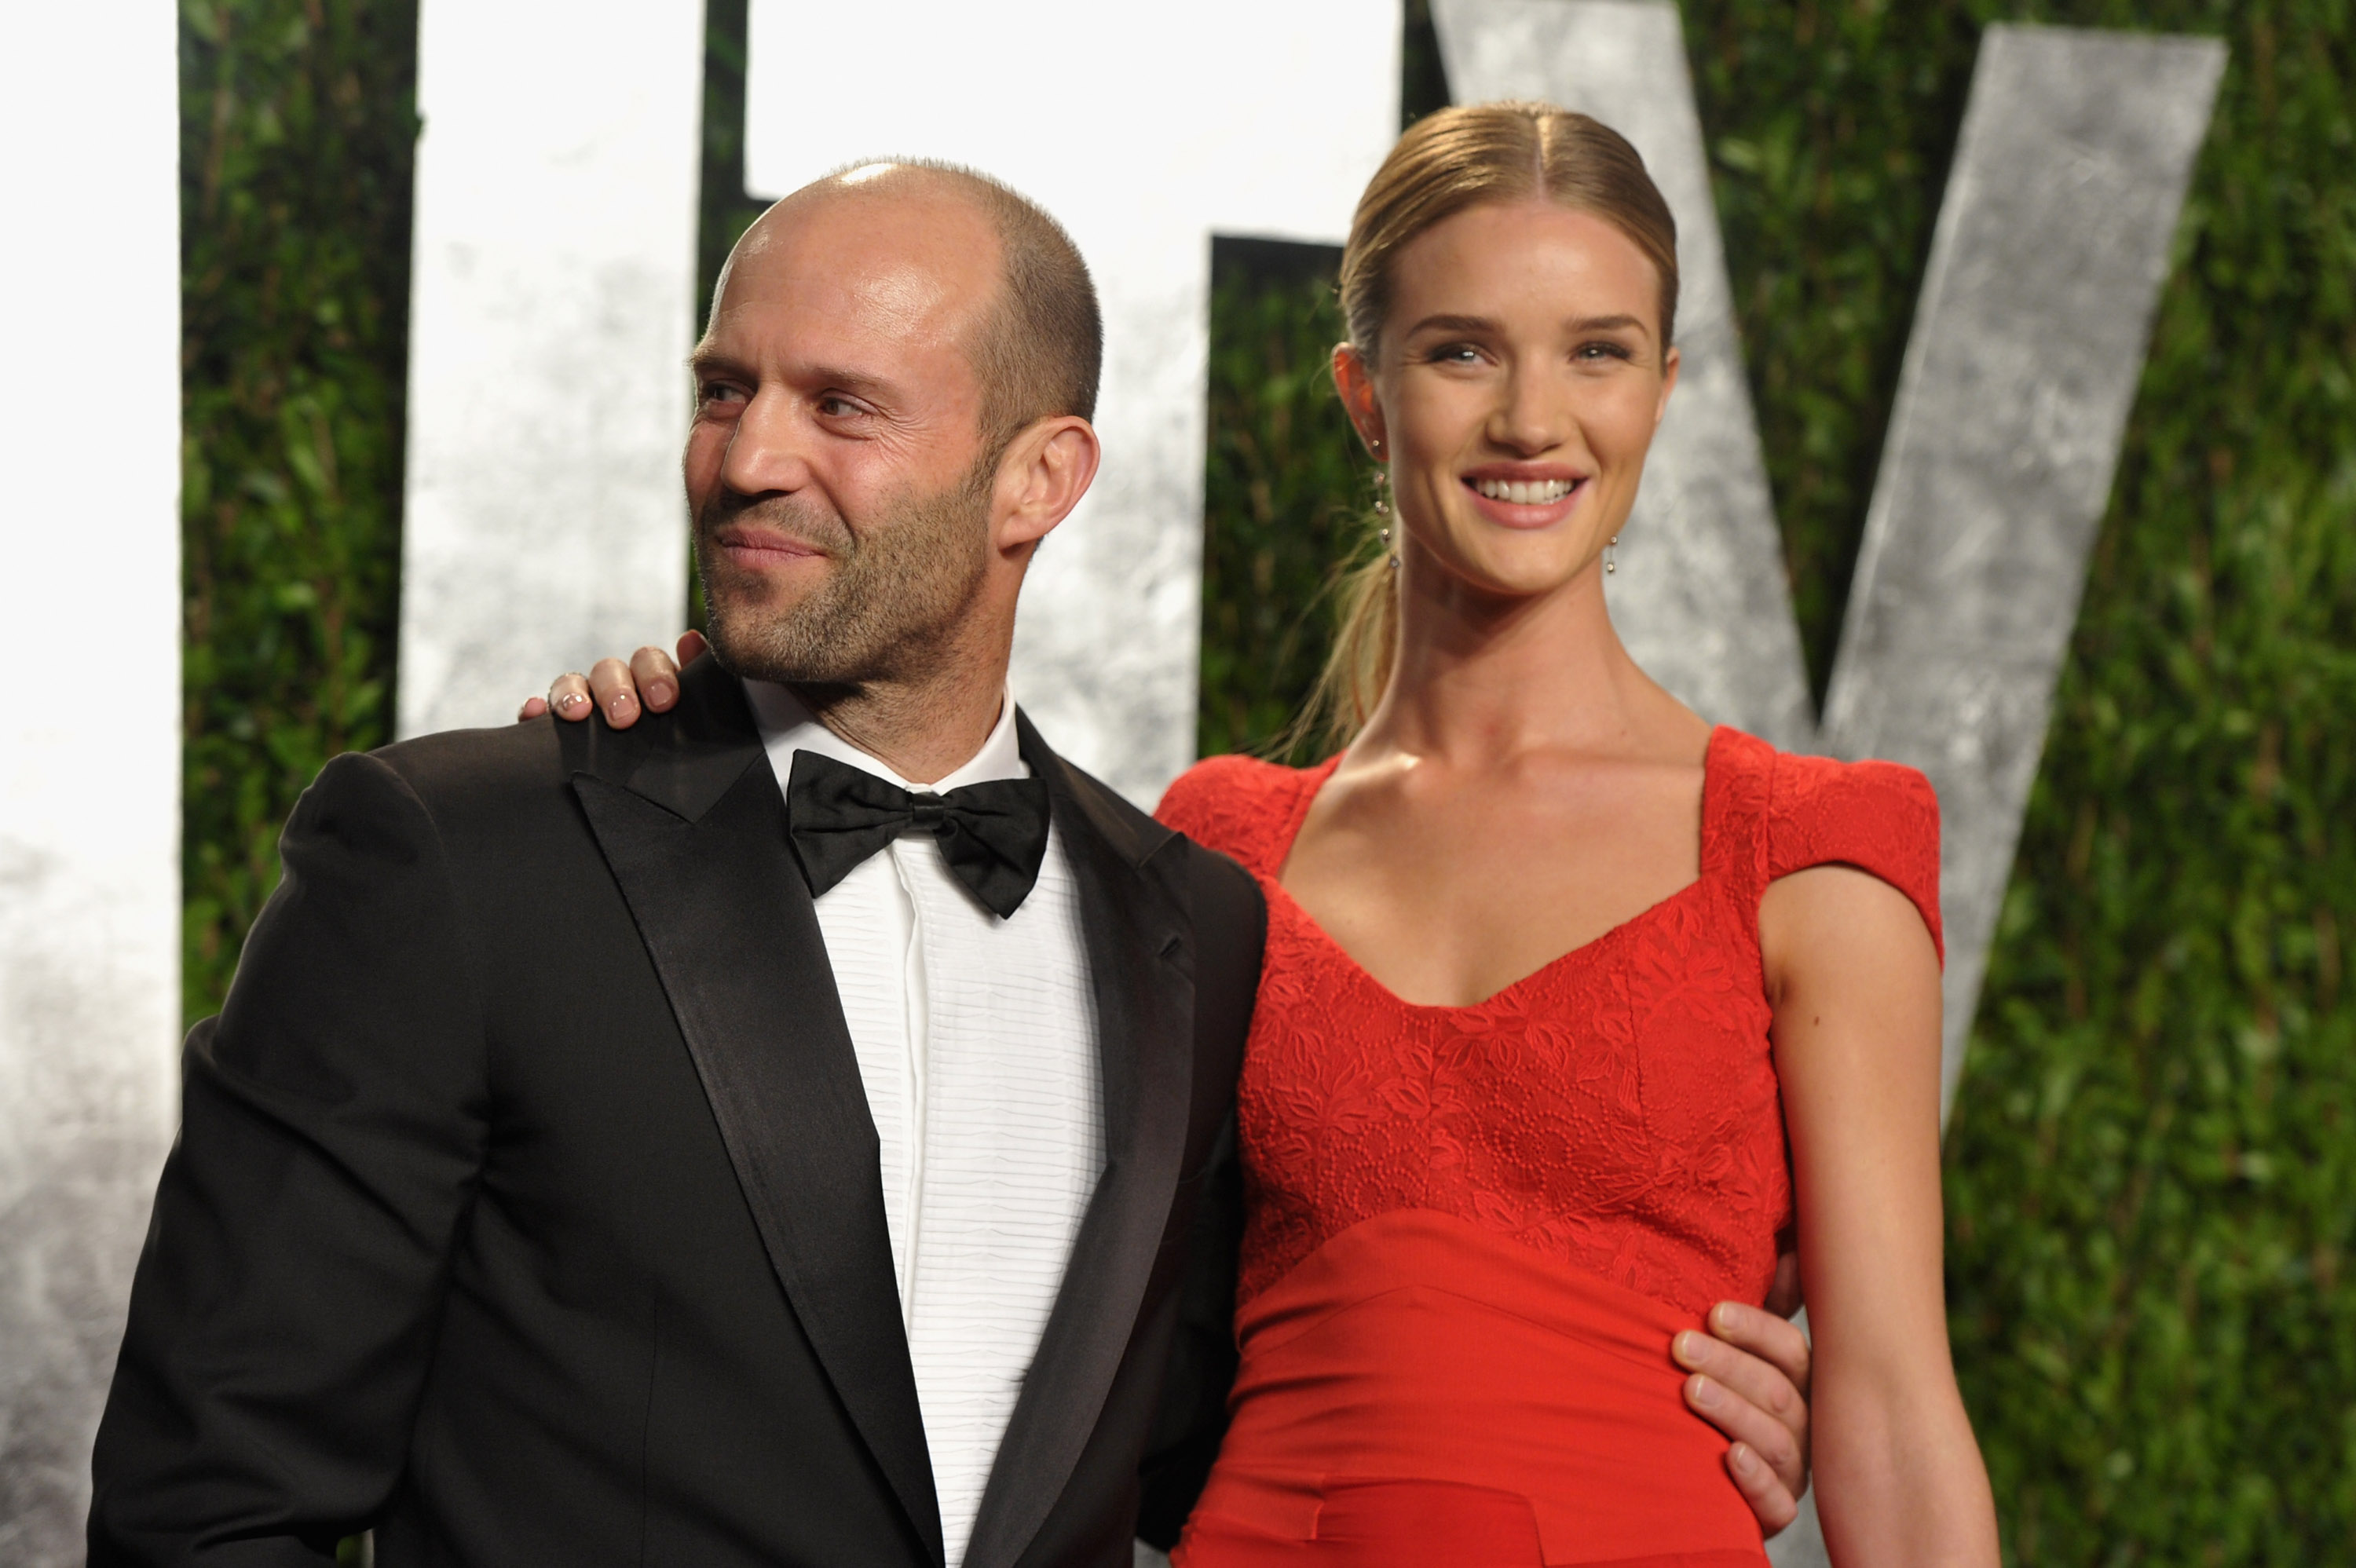 Jason Statham and girlfriend Rosie Huntington-Whiteley at the Vanity Fair afterparty.